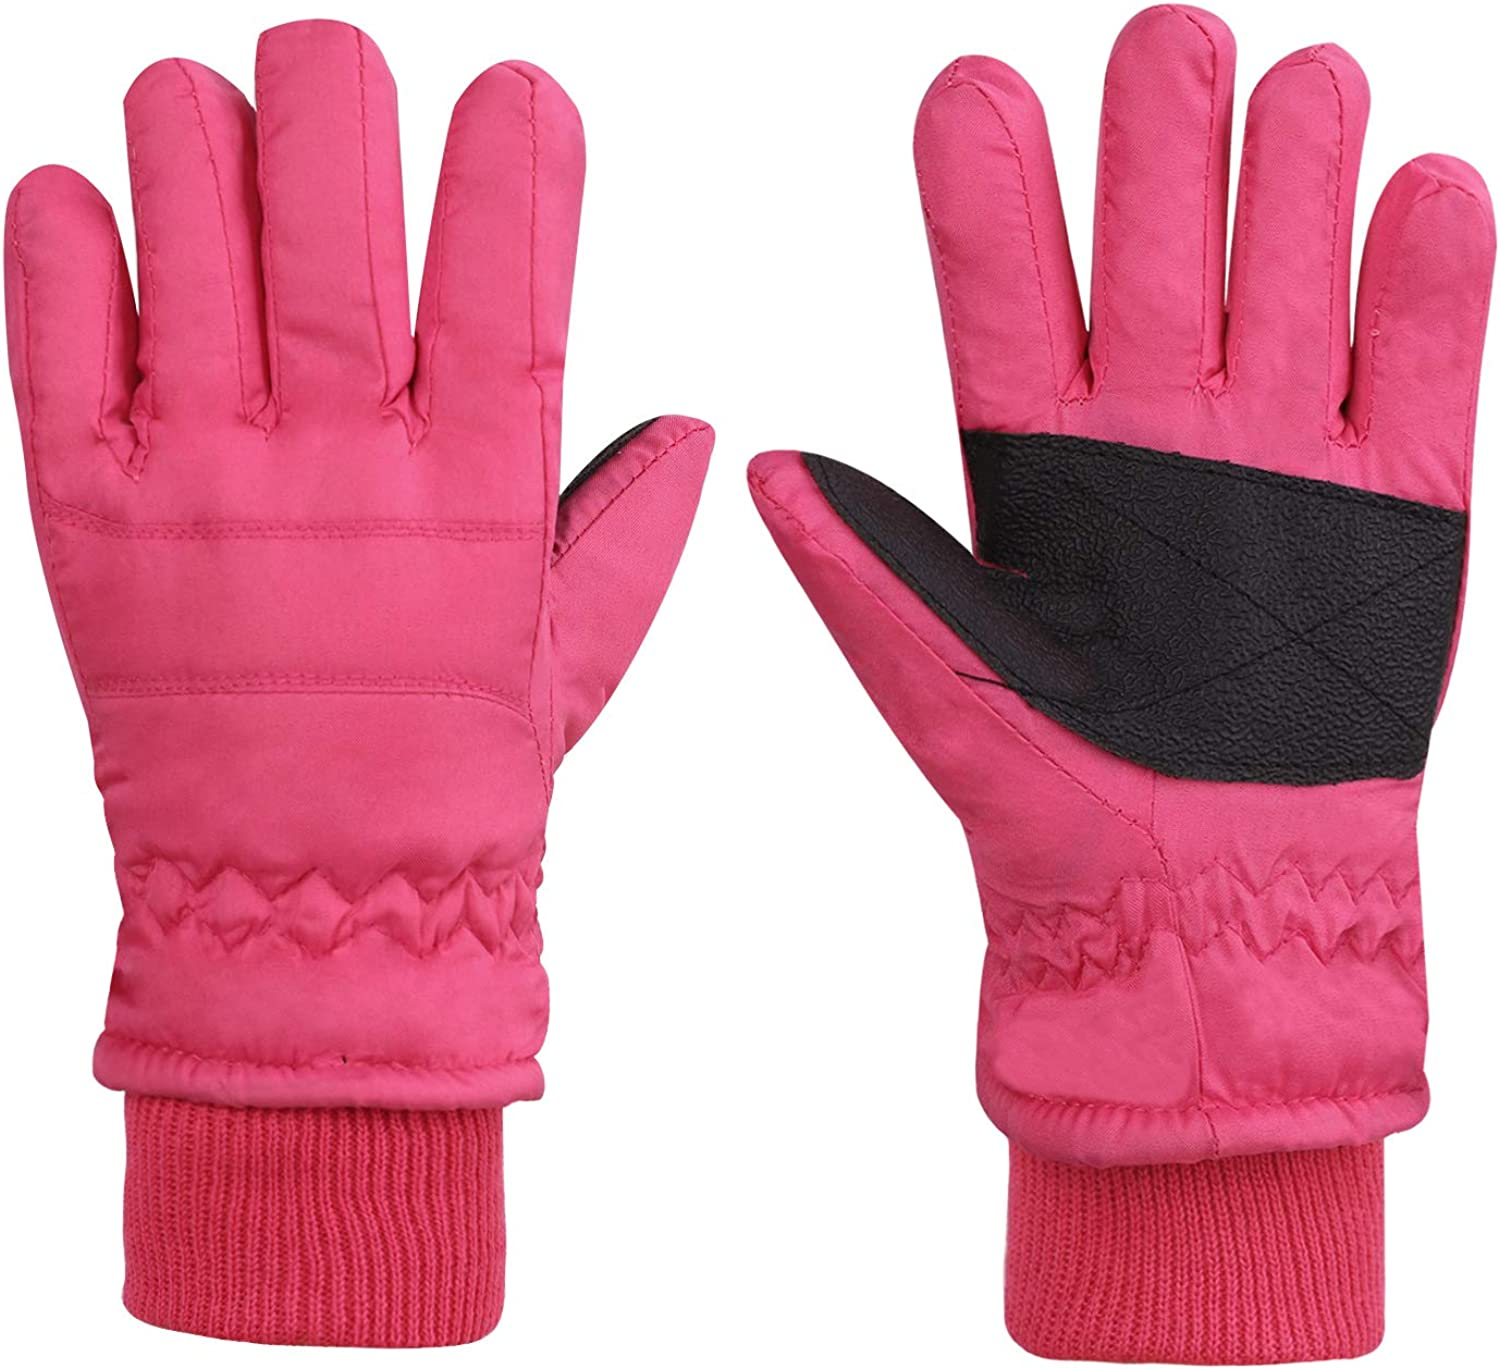 Baby Toddler Waterproof Thermal Winter Snow Fleece Lined Insulated Gloves 1-3, 3-5